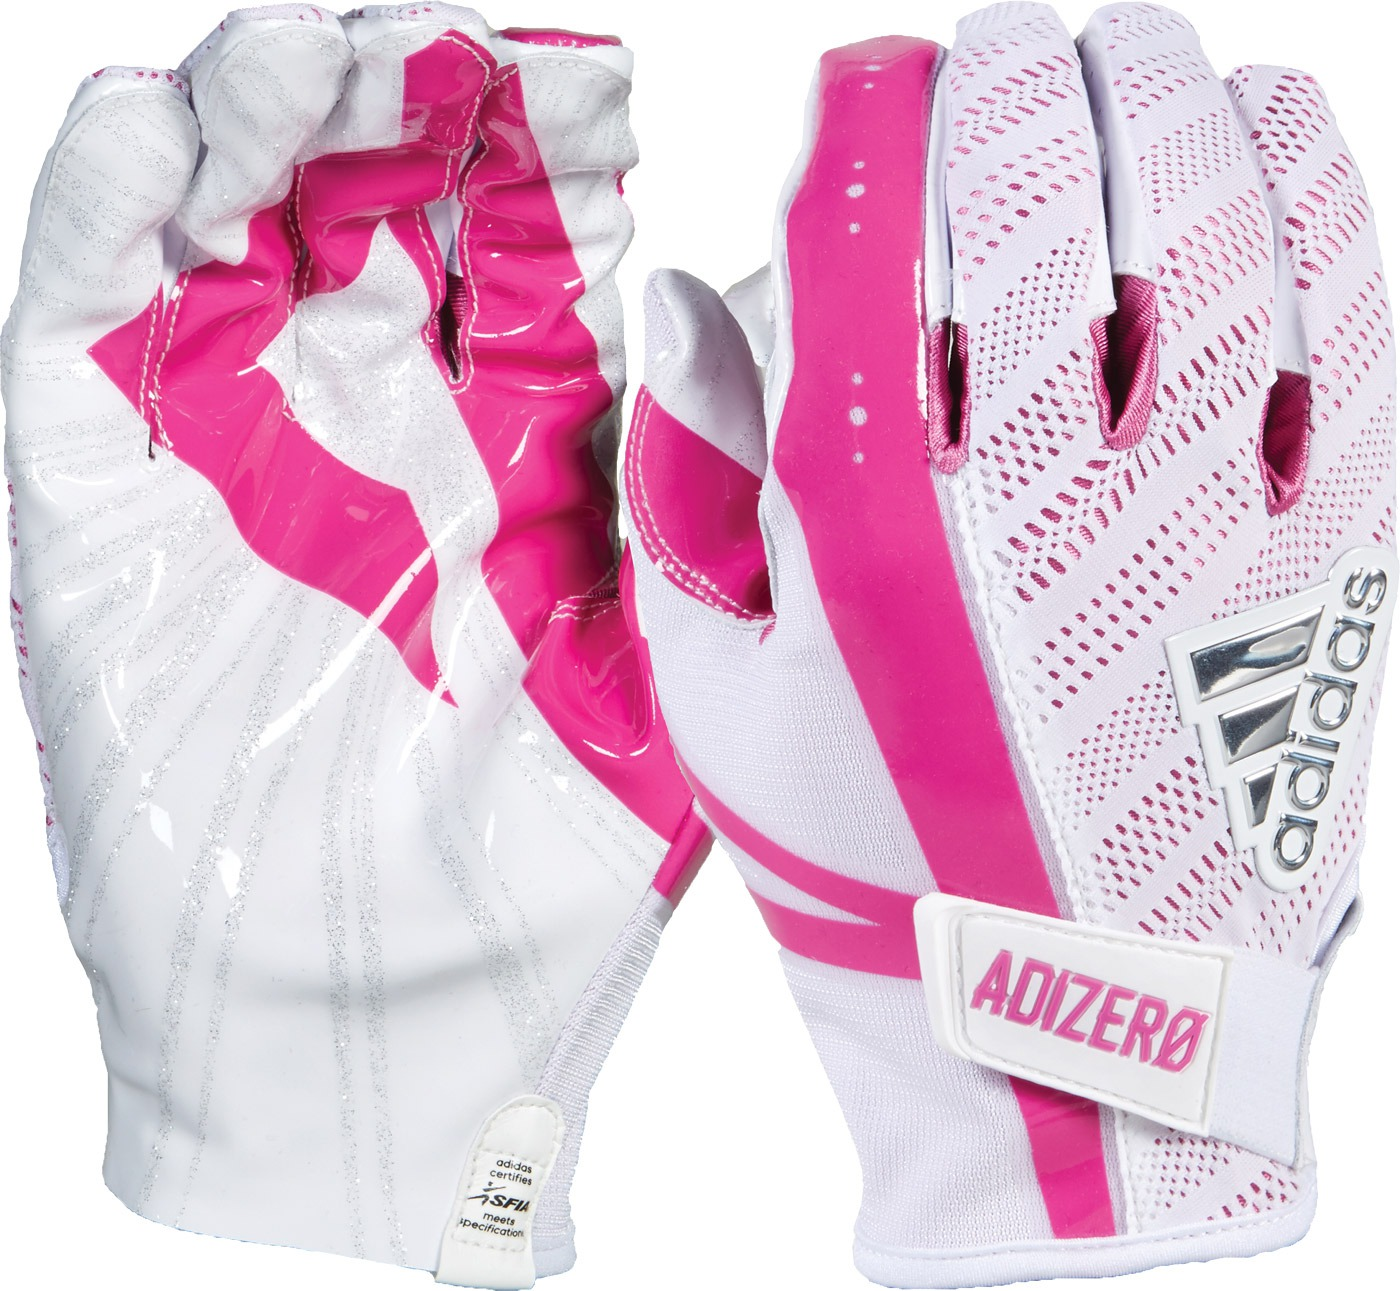 Adidas Adizero 5-Star 6.0 Adult Football Receiver Gloves